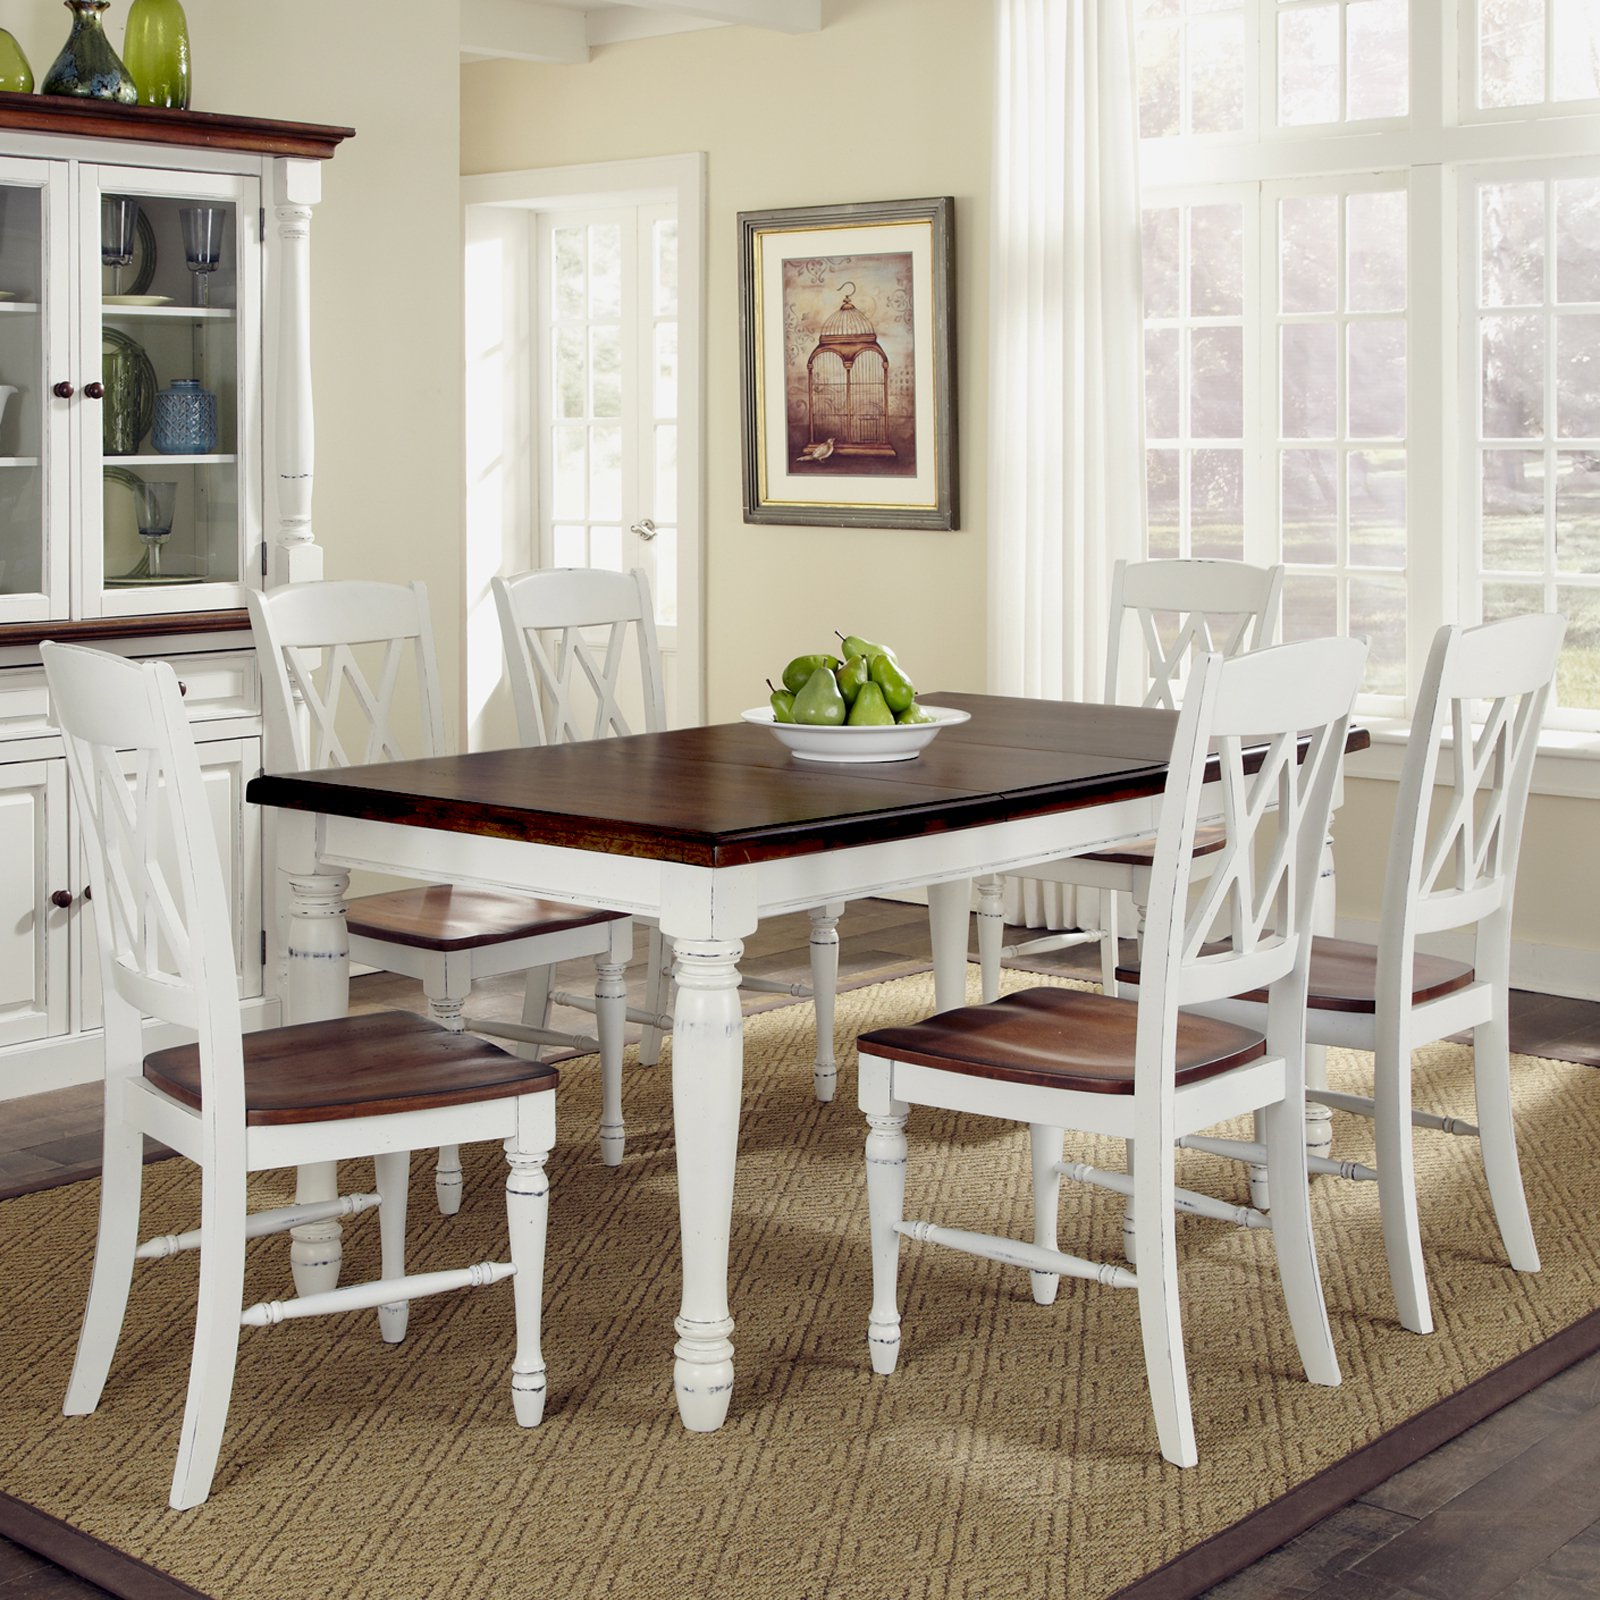 Home Styles Monarch Rectangular Dining Table And 6 Double X Back Chairs Multiple Finishes